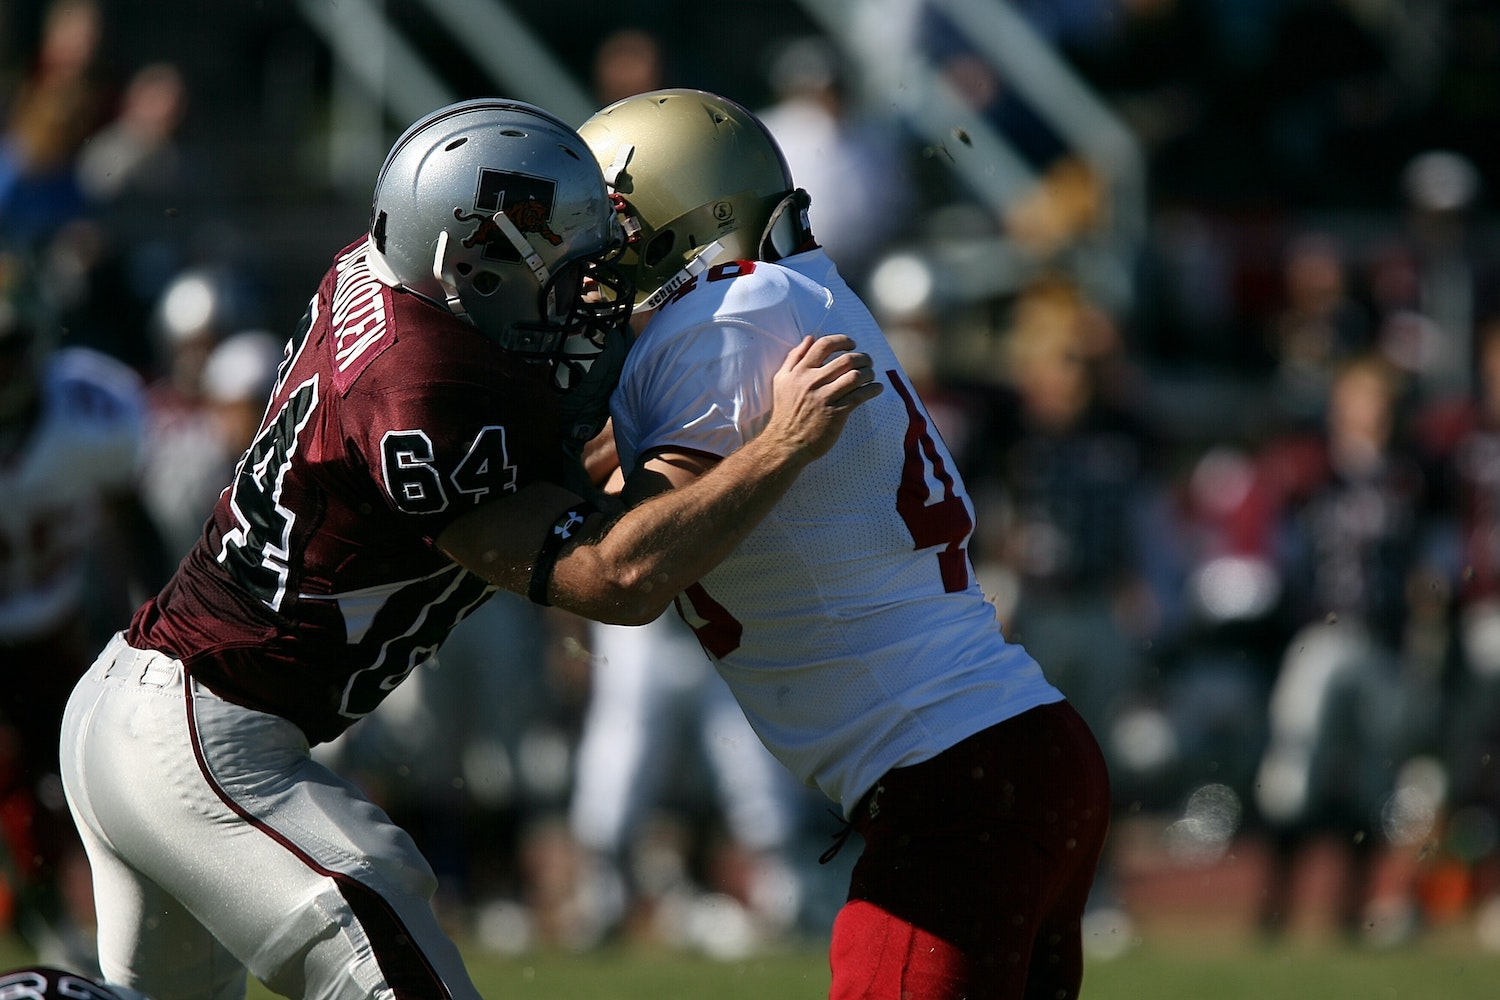 Offense, Defense, Or Both: American Football Players